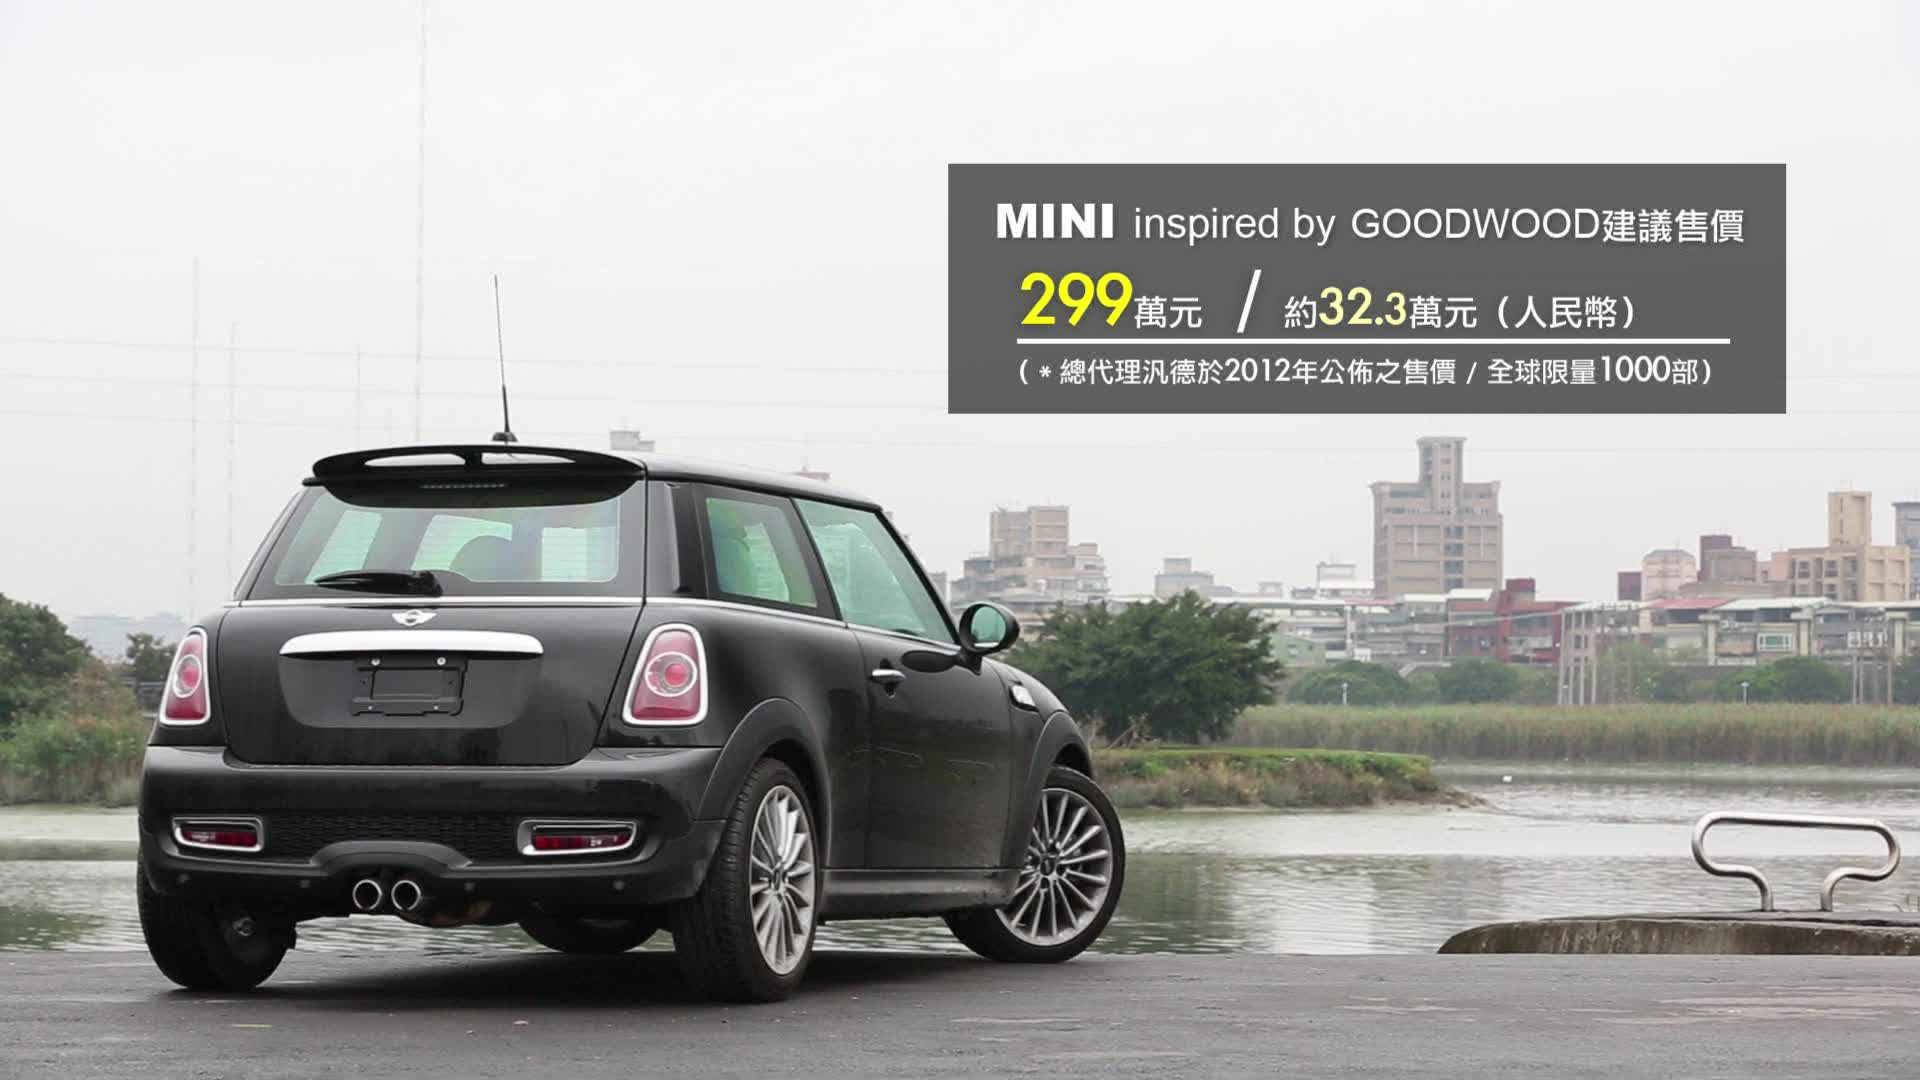 意想不到的組合 Mini Inspired by GoodWood